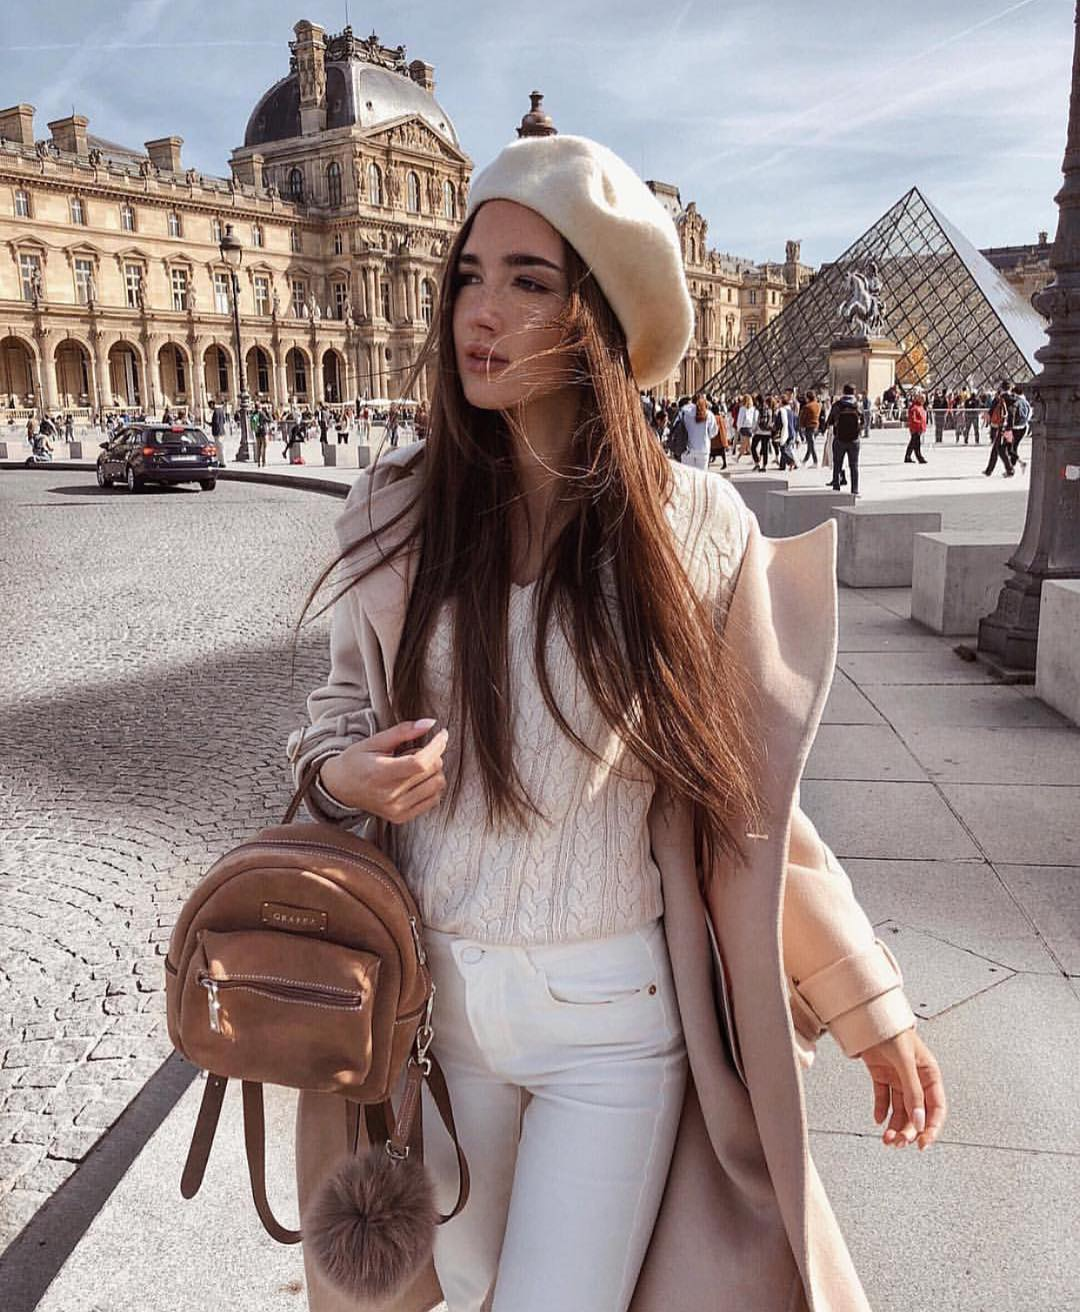 Parisian Chic Outfit For Autumn: Beret Hat, Cream Coat And White Sweater 2019